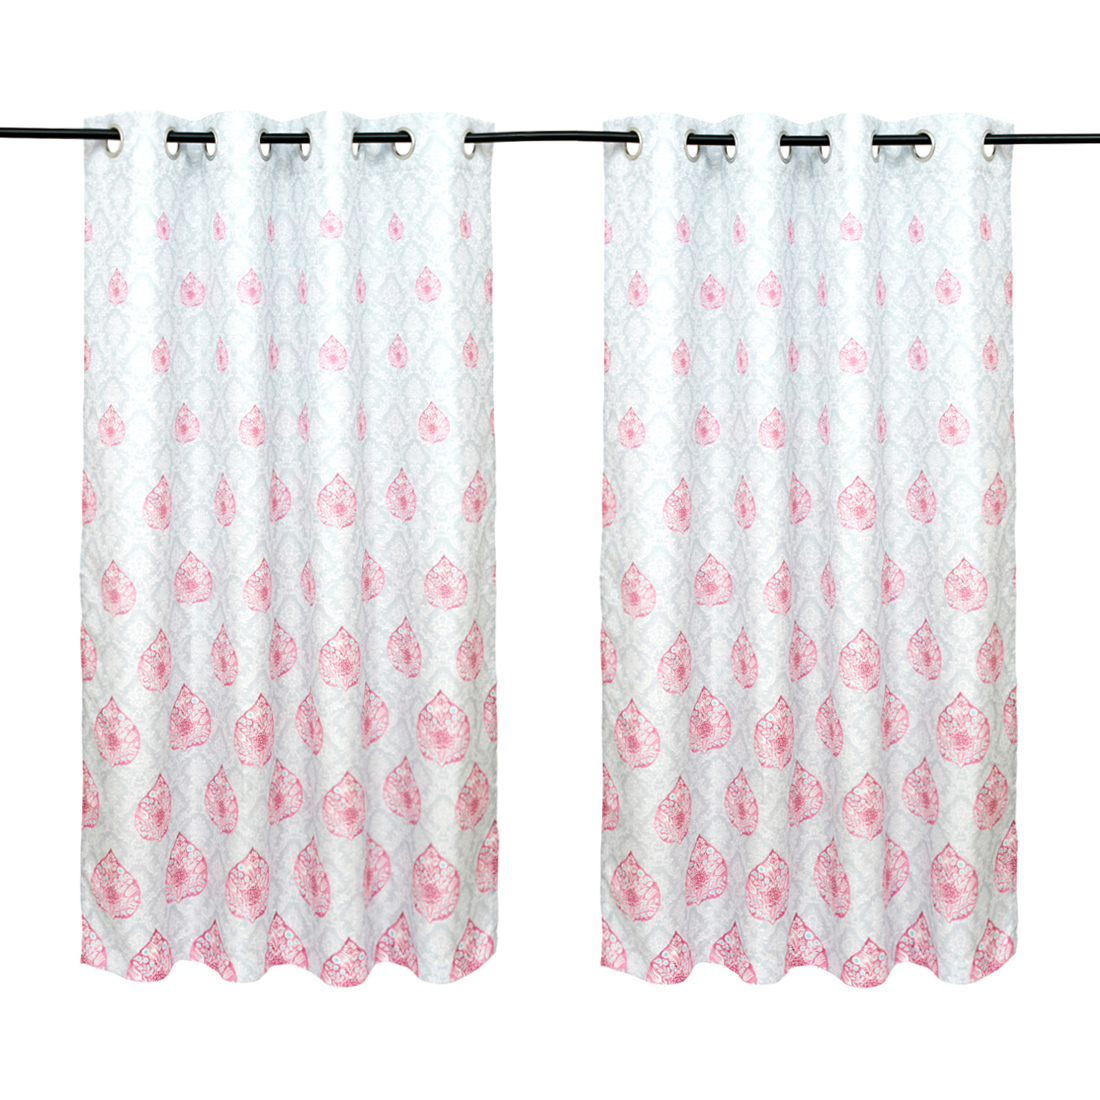 Nora Printed set of 2 Polyester Window Curtains in Rose Colour by Living Essence